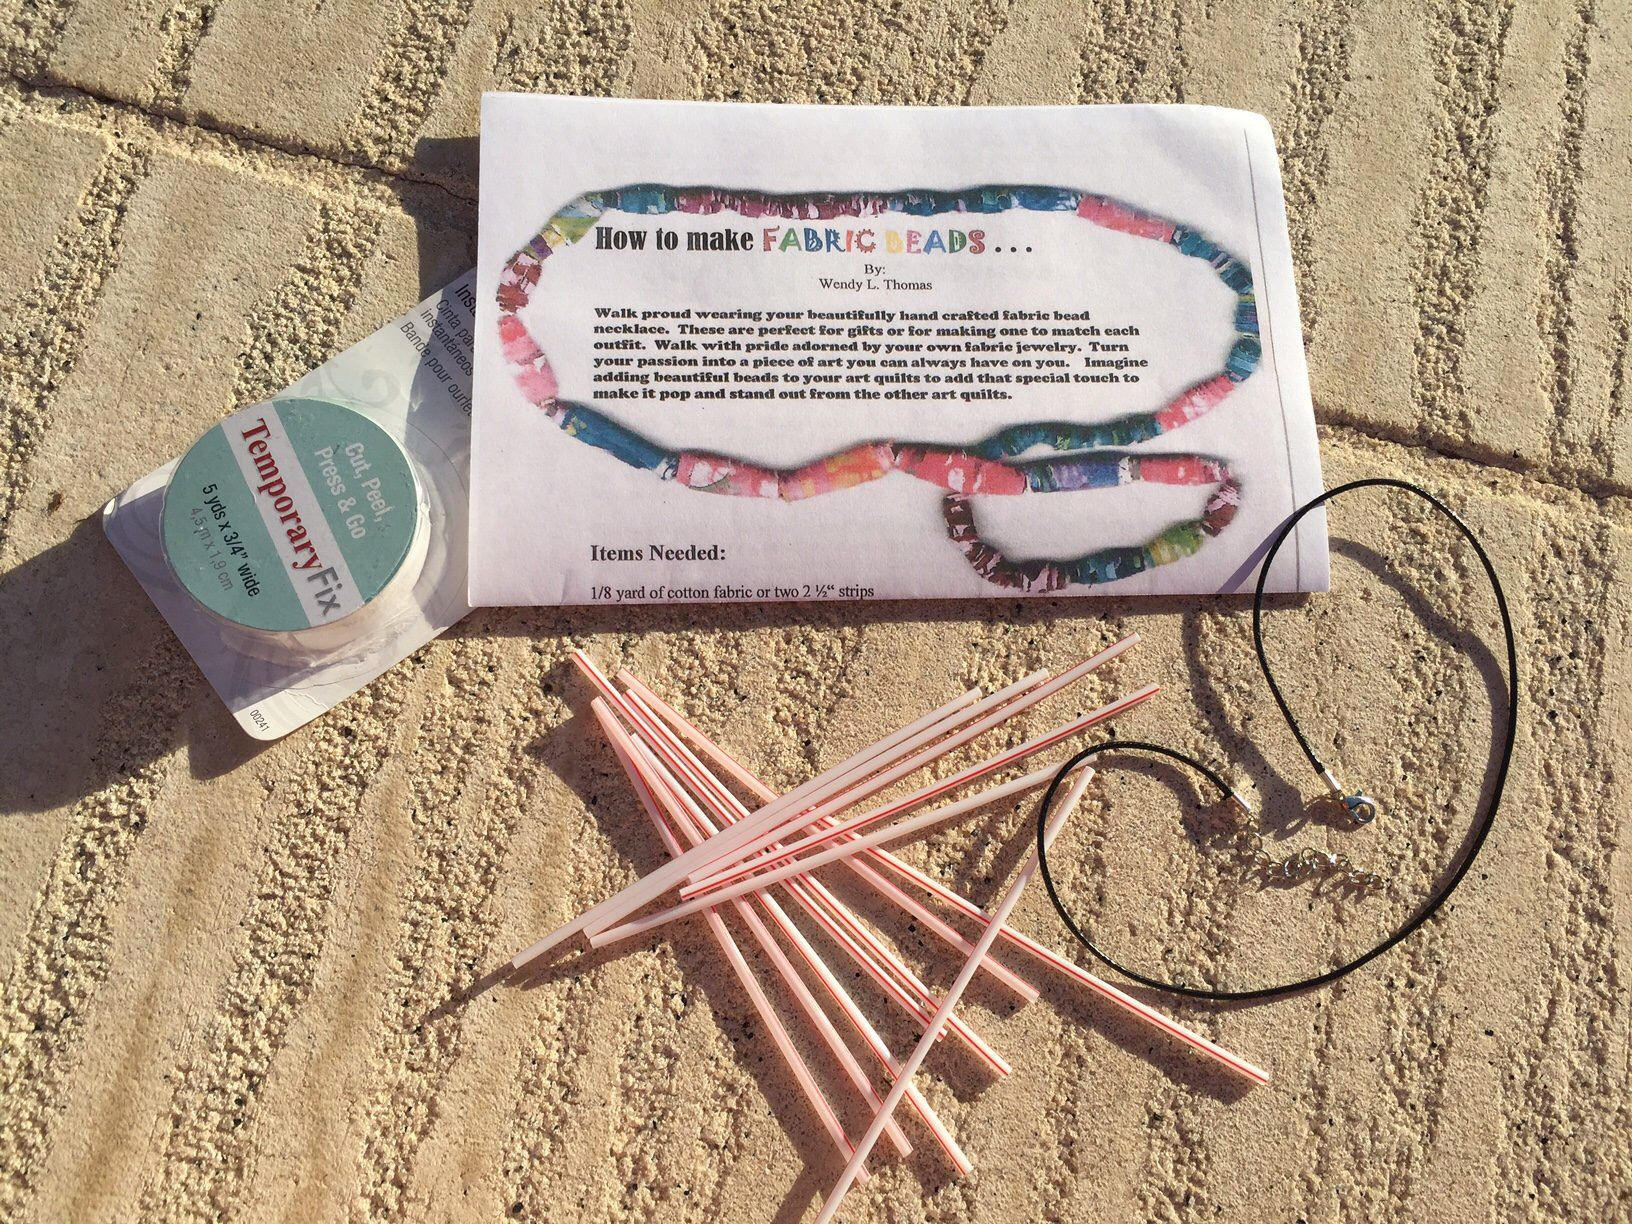 Kids art project, Summer fun project, Summer activity Fabric Beads pattern & kit Make your own light weight jewelry. Fabric beads  necklaces